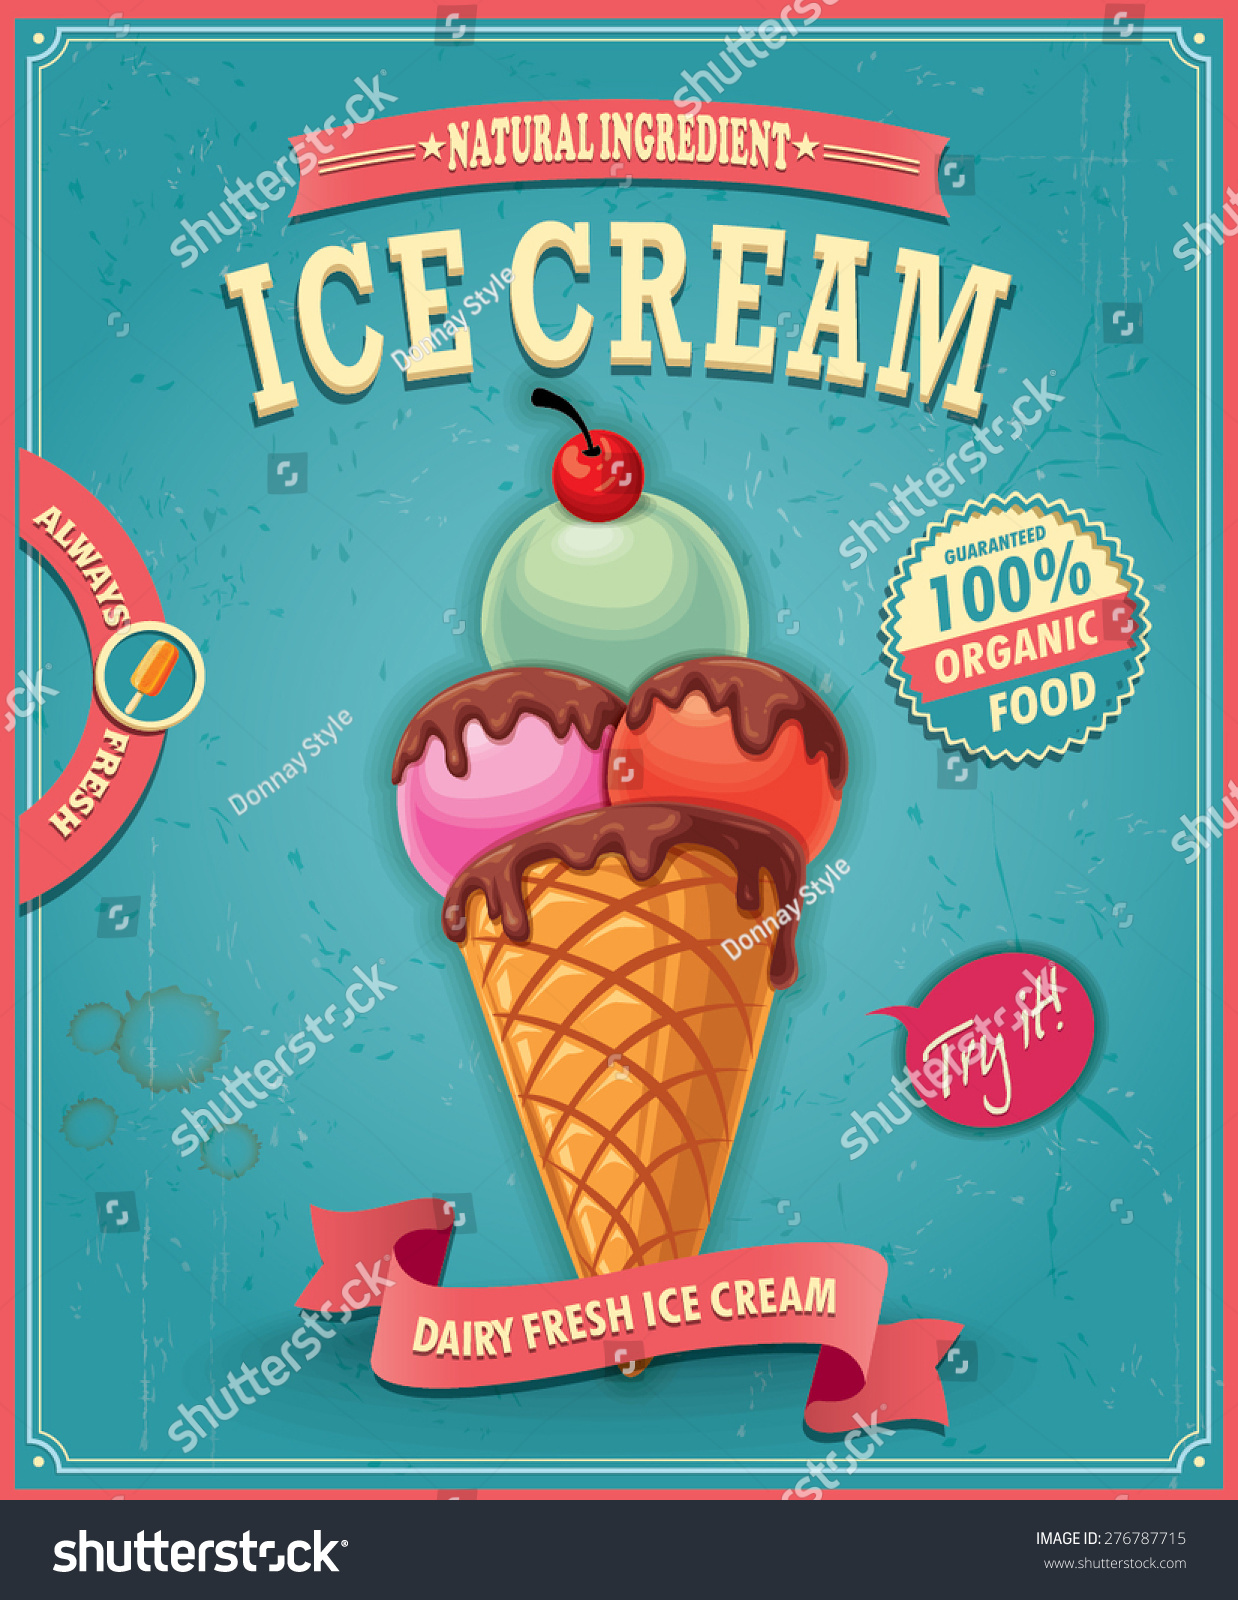 Vintage Ice Cream Poster Design Stock Vector 276787715 - Shutterstock